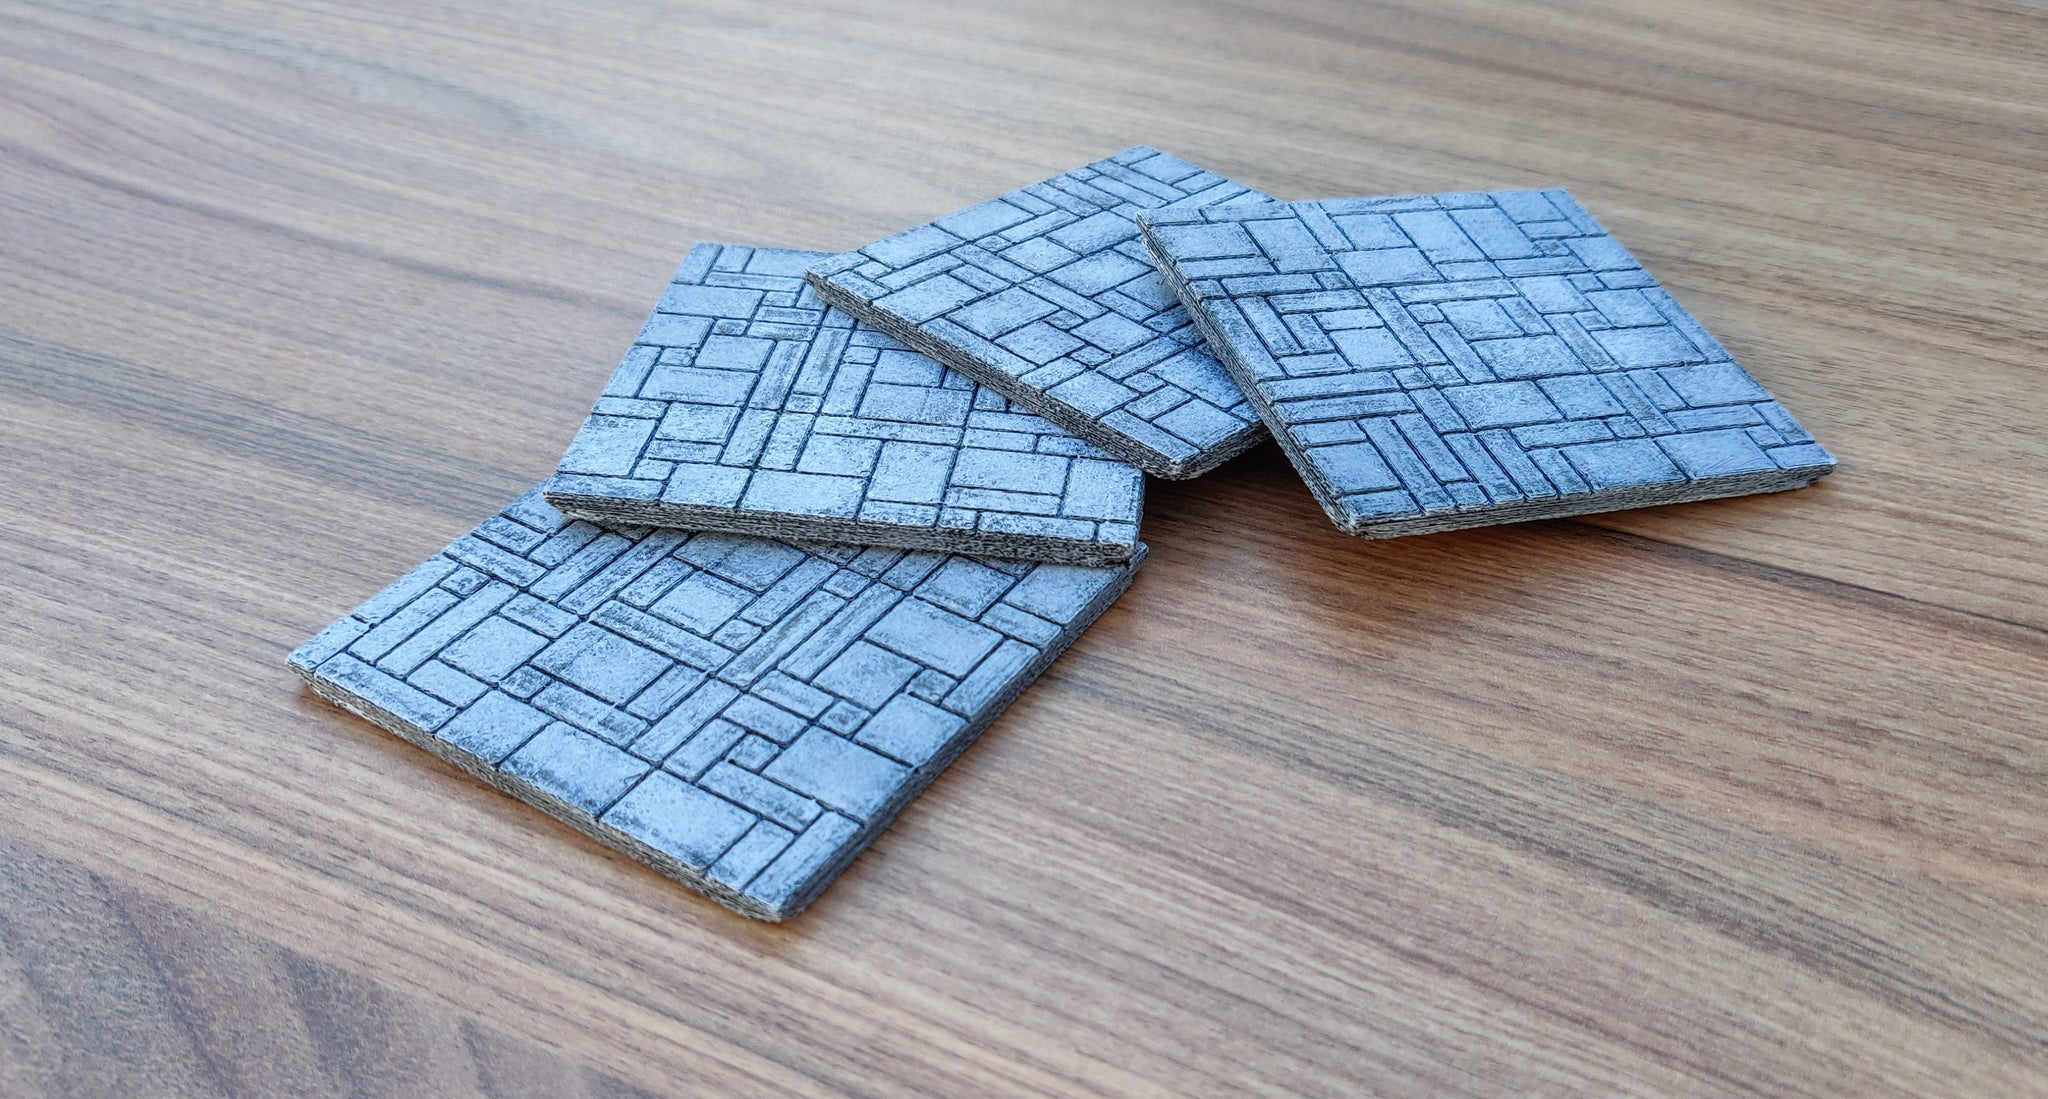 Floors 3x3 - Terrain Basics